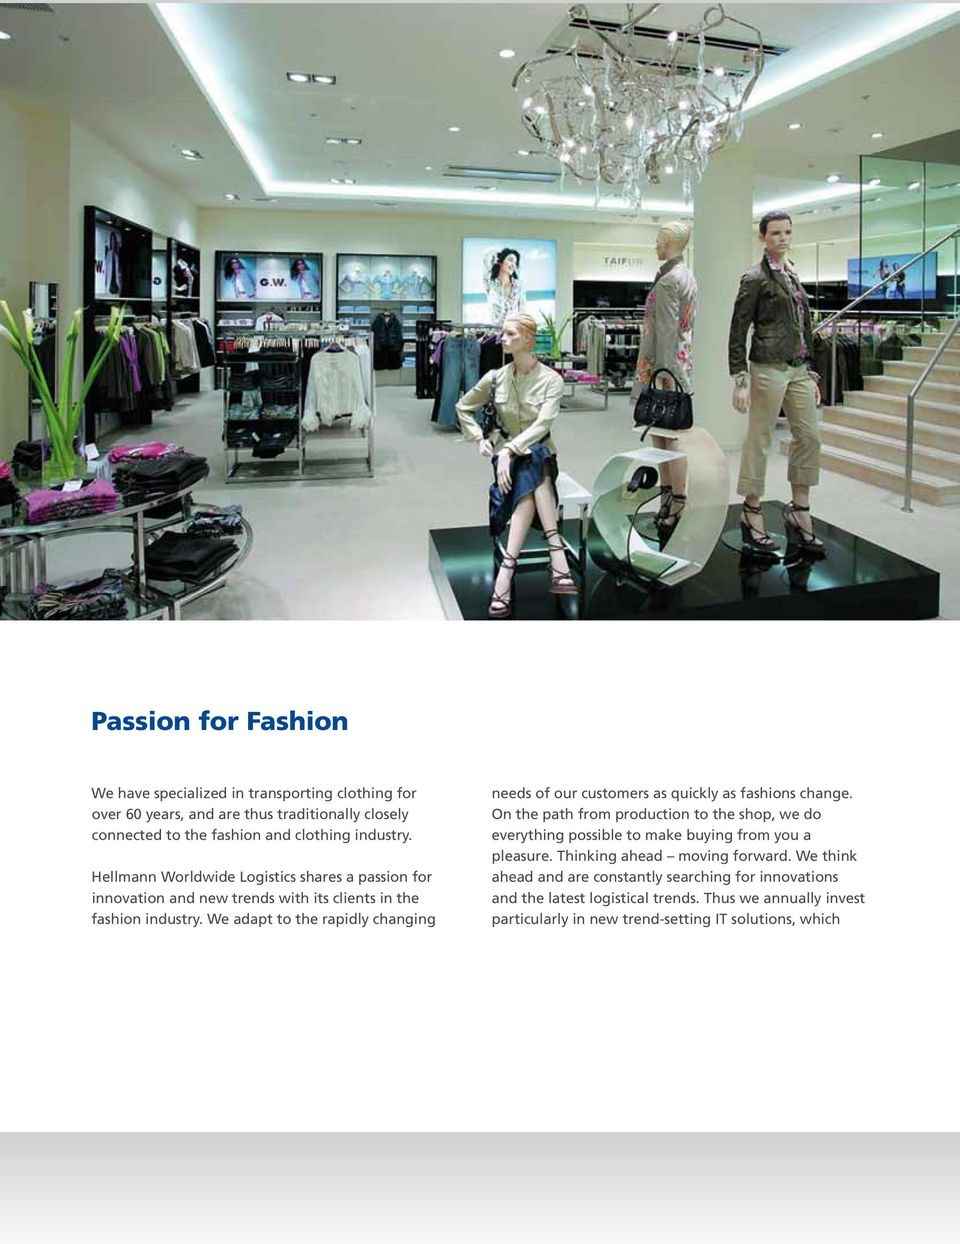 We adapt to the rapidly changing needs of our customers as quickly as fashions change.